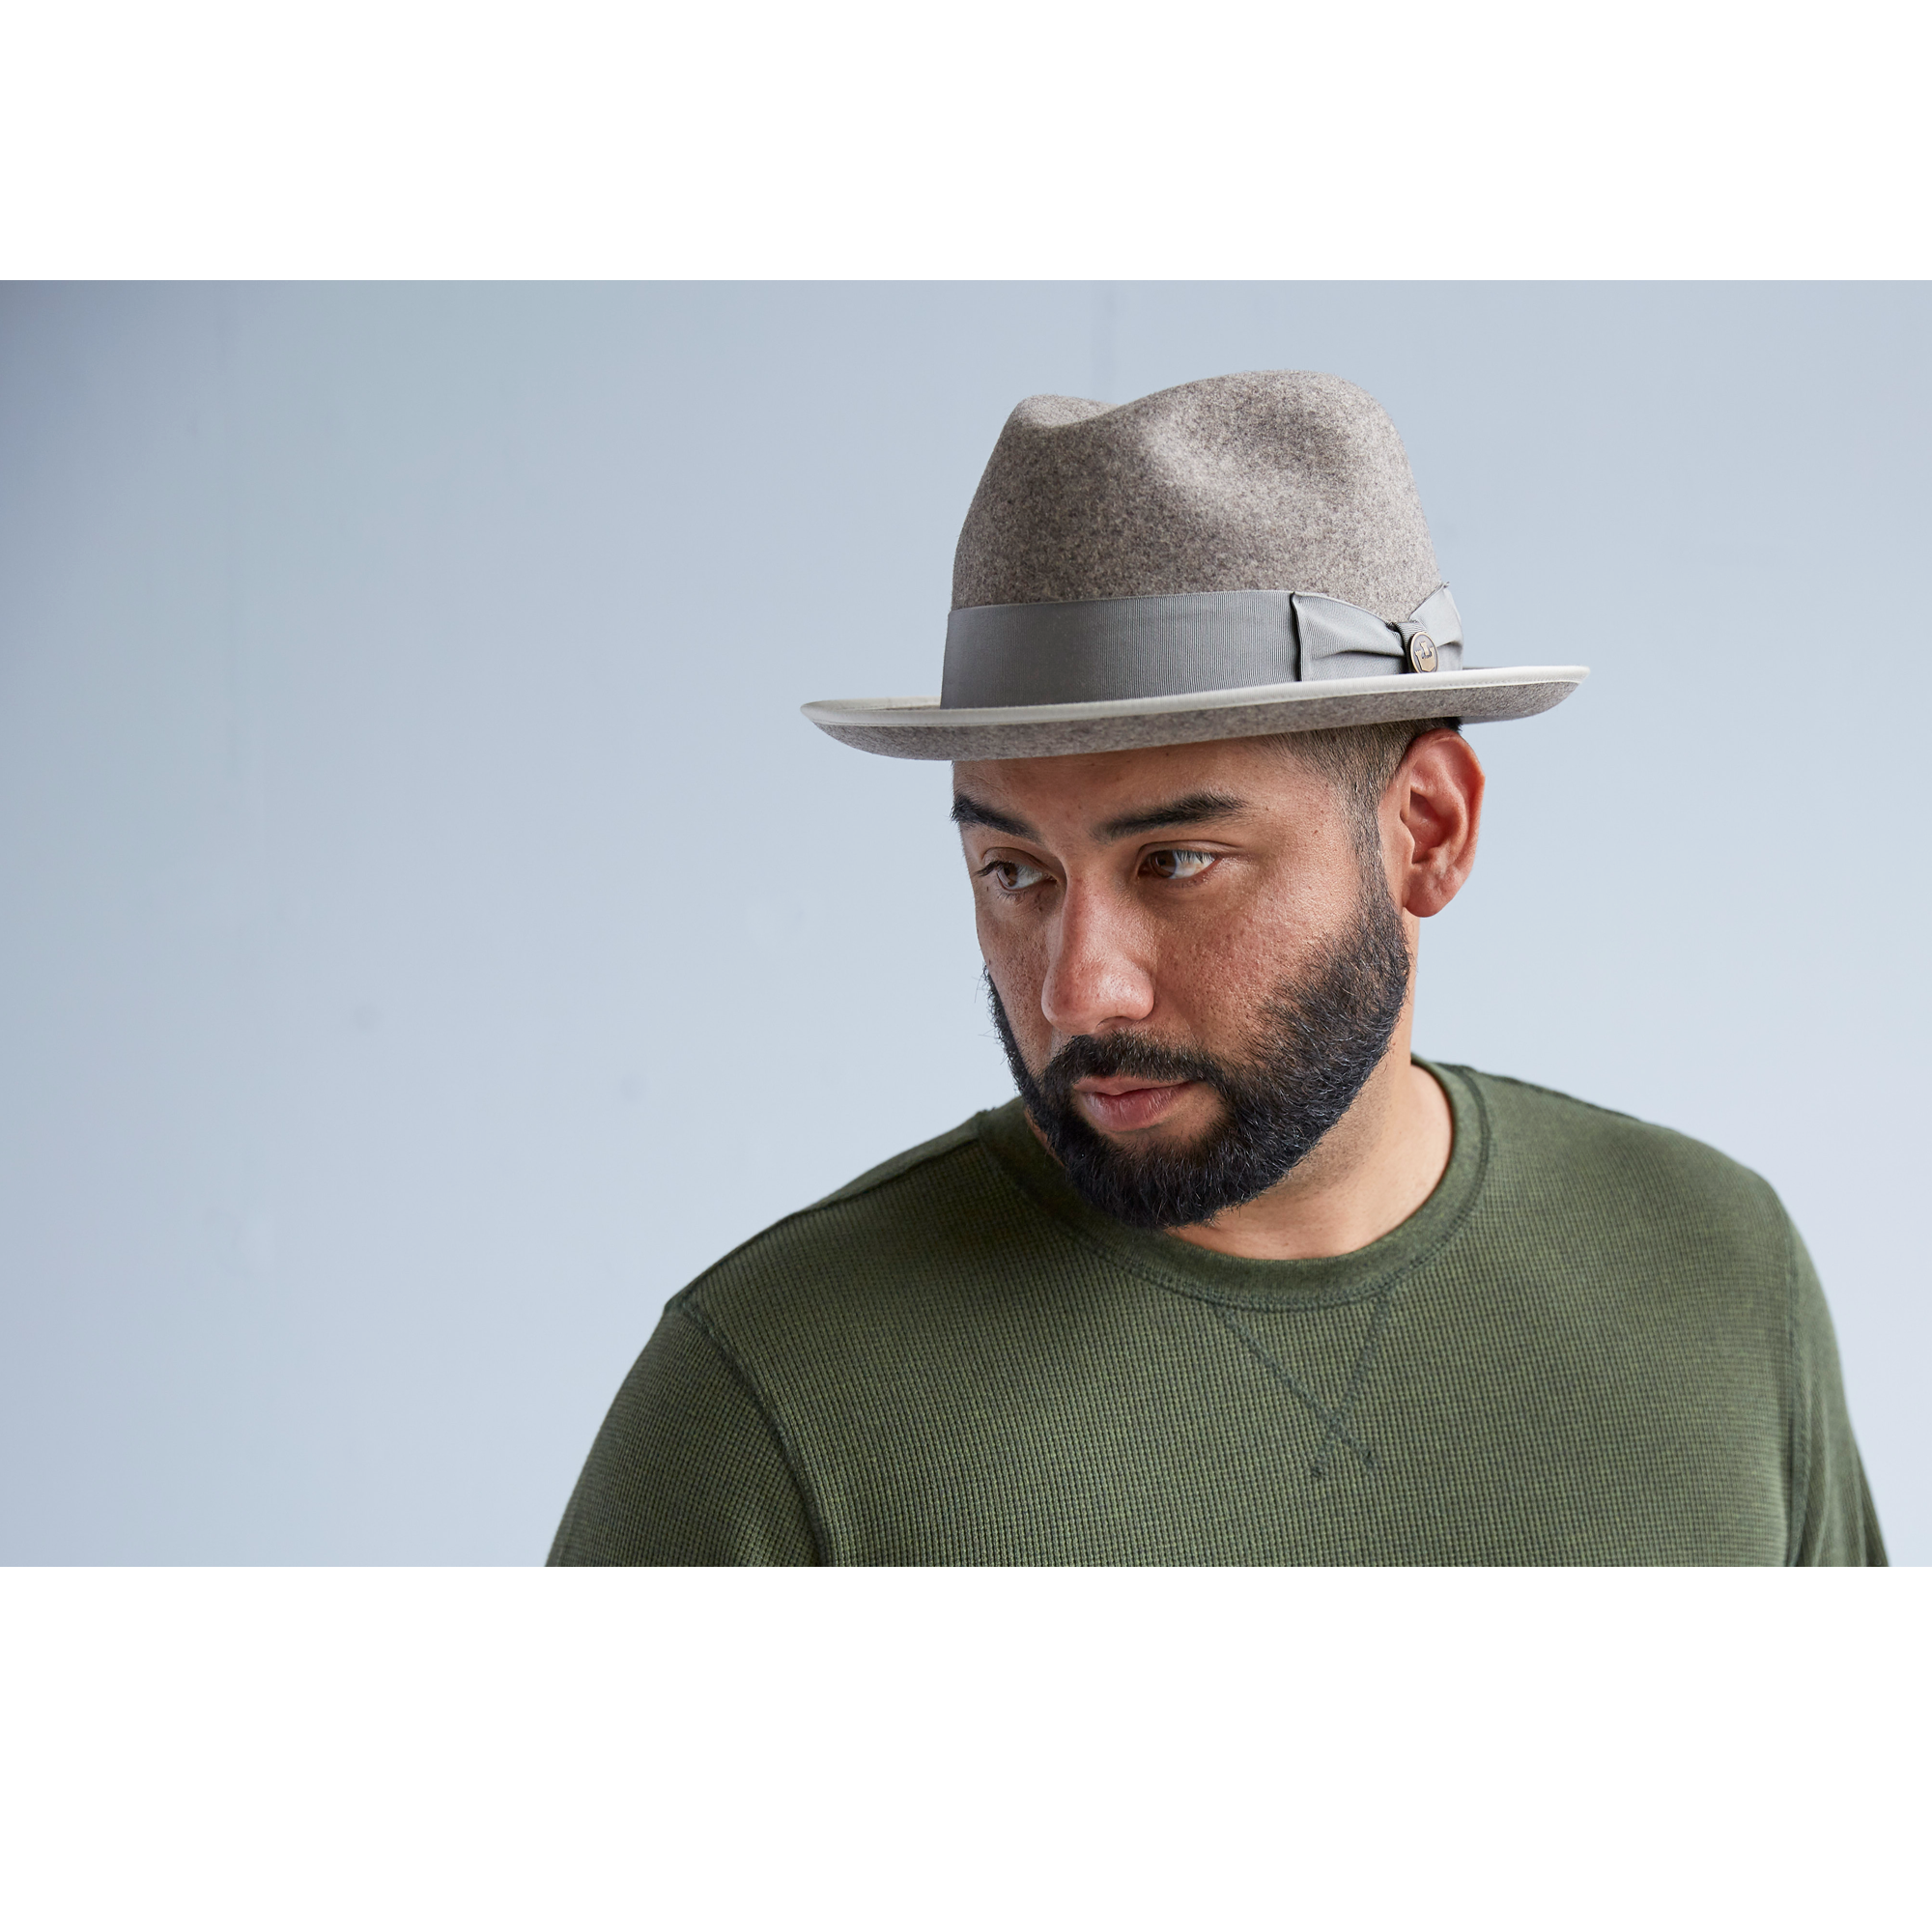 Goorin The Hills Fedora Hat in Grey, size Large